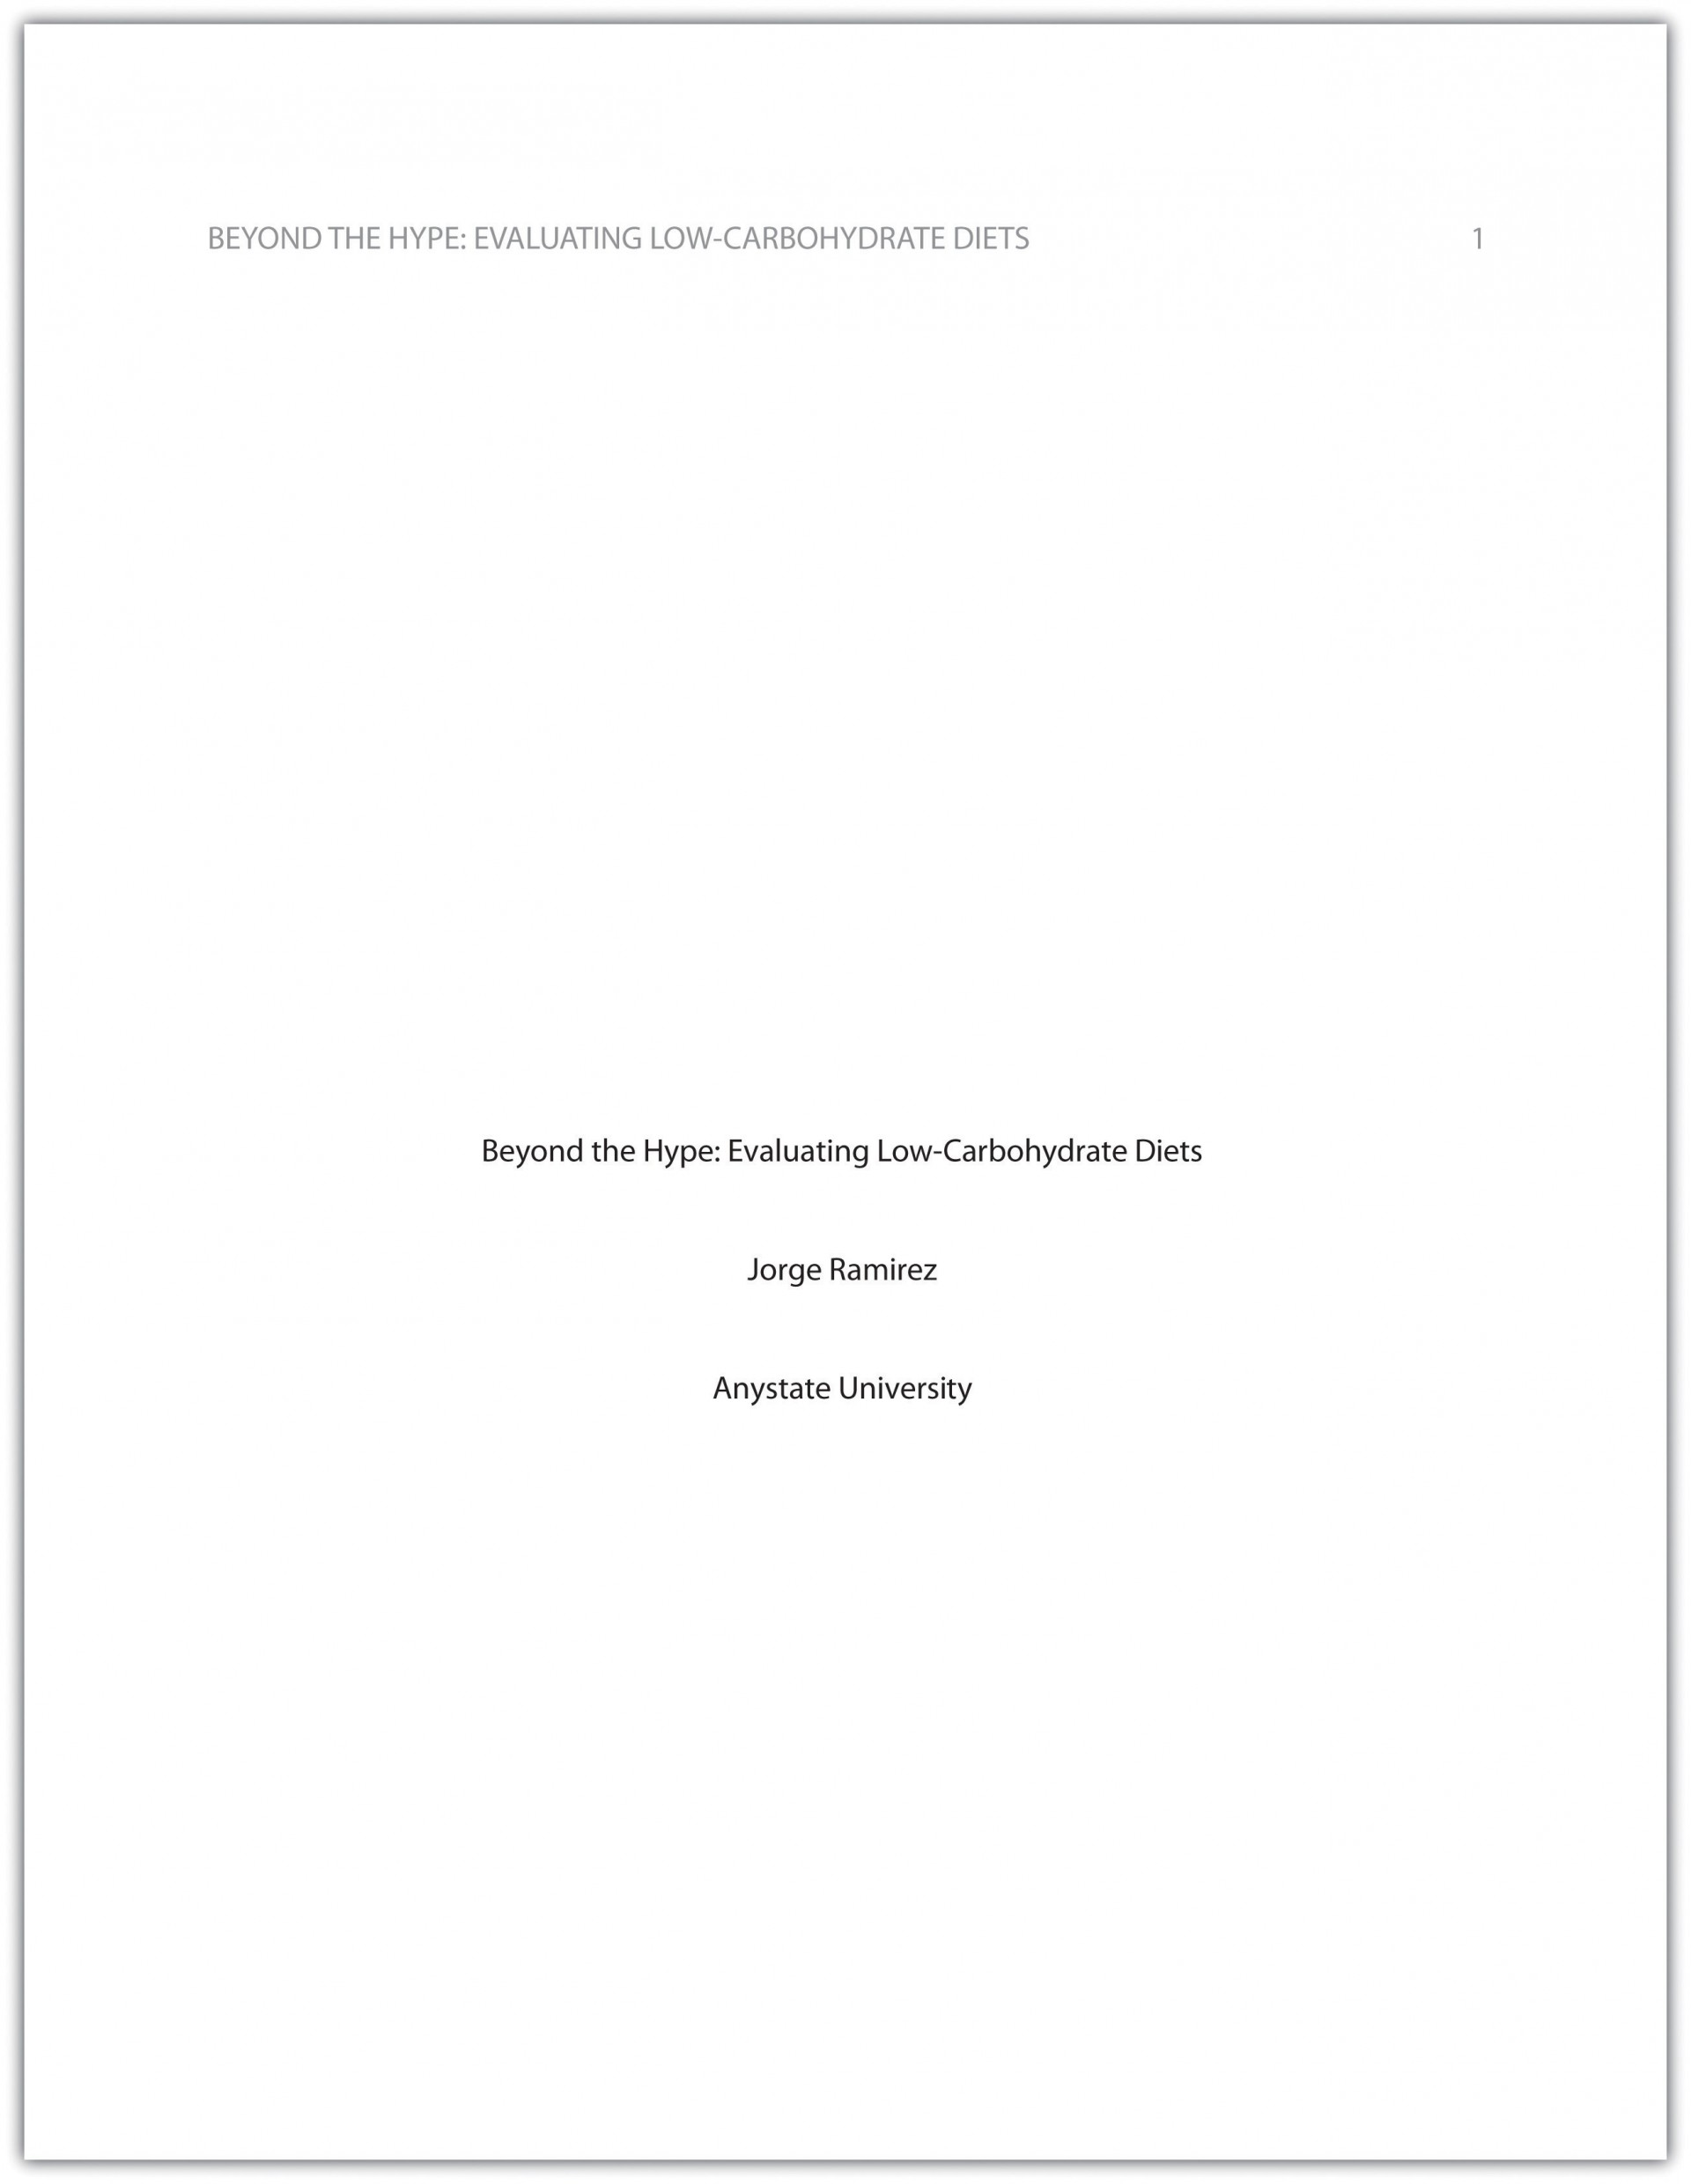 002 Research Paper Cover Page Apa Excellent Template Layout Format Sample Title 1920